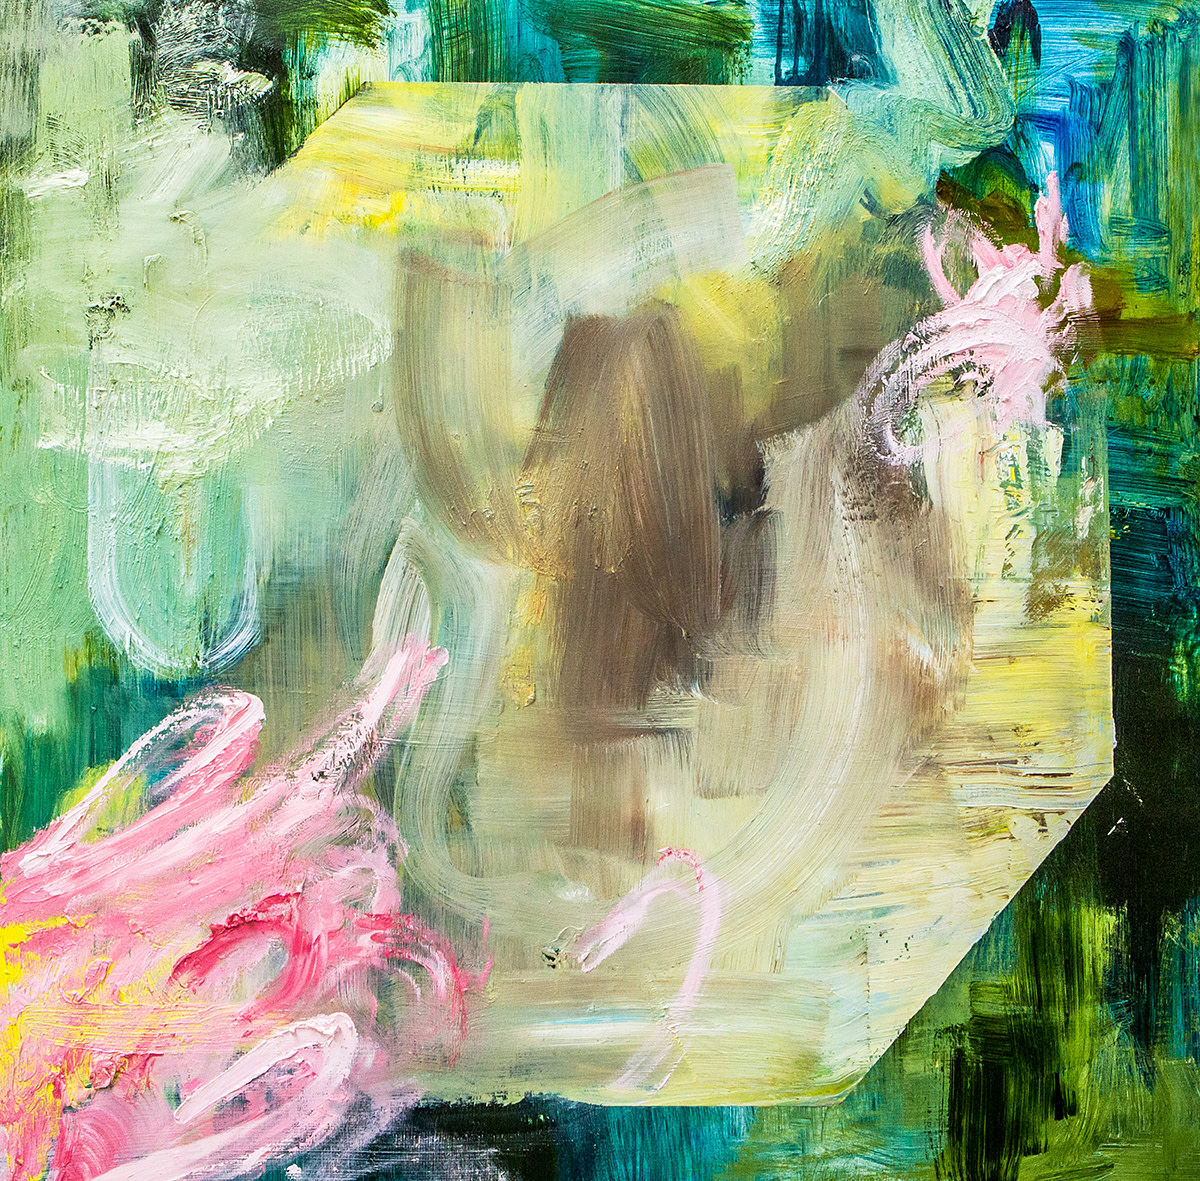 """<span class=""""link fancybox-details-link""""><a href=""""/artists/118-kate-dunn/works/2839/"""">View Detail Page</a></span><div class=""""artist""""><strong>Kate Dunn</strong></div> <div class=""""title""""><em>Mondegreen I</em>, 2018</div> <div class=""""medium"""">Acrylic Paint, Oil Paint and Marble Dust on Canvas</div> <div class=""""dimensions"""">90 x 90 cm<br /> 35 3/8 x 35 3/8 in.</div><div class=""""copyright_line"""">Copyright The Artist</div>"""